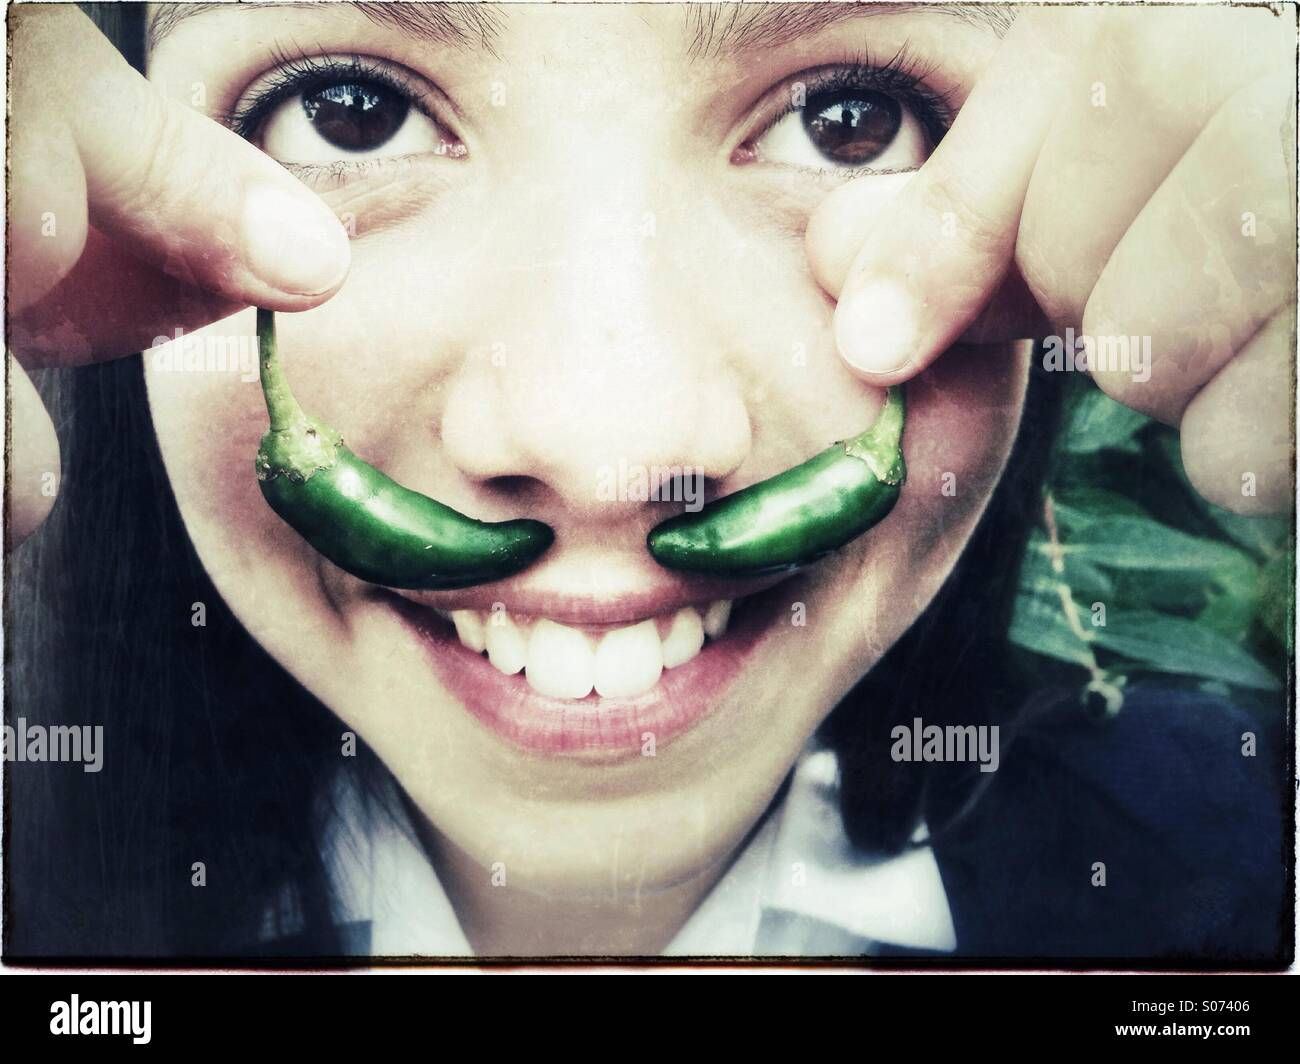 Happy_girl_holds_green_chilies_as_fake_m